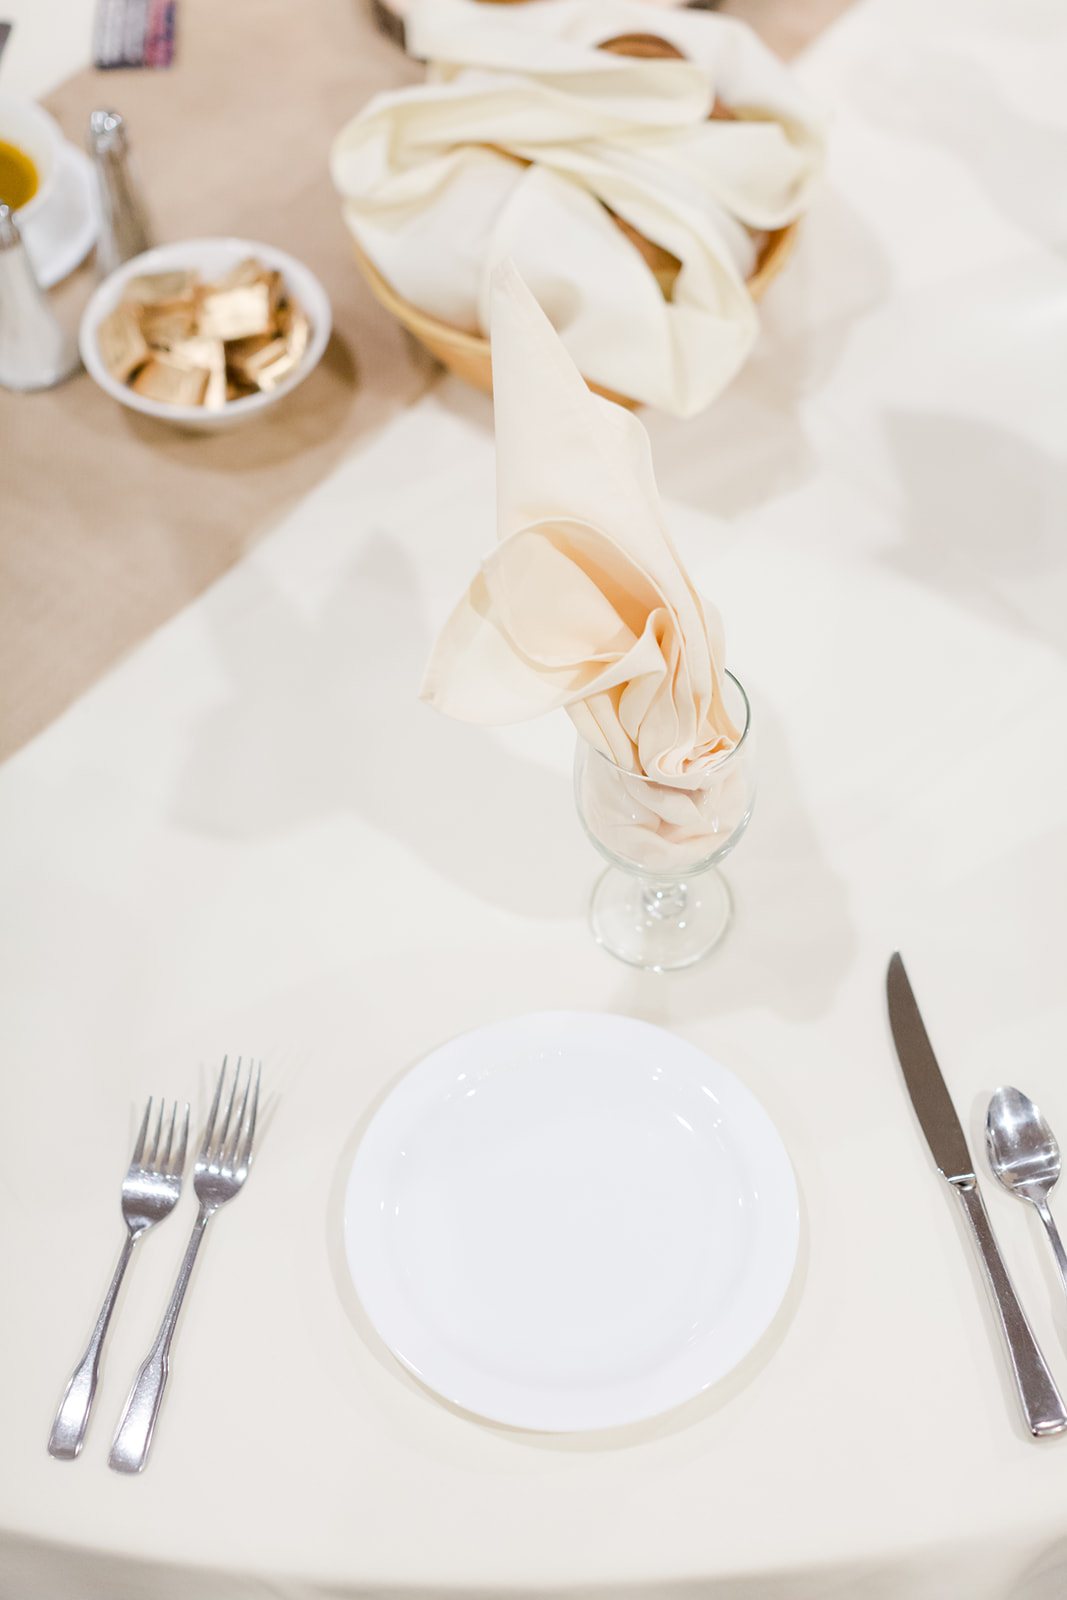 Photo by Lindsey White Photography | Social Events banquet hall at Royal Cliff south metro Minnesota | table setting black white or ivory included